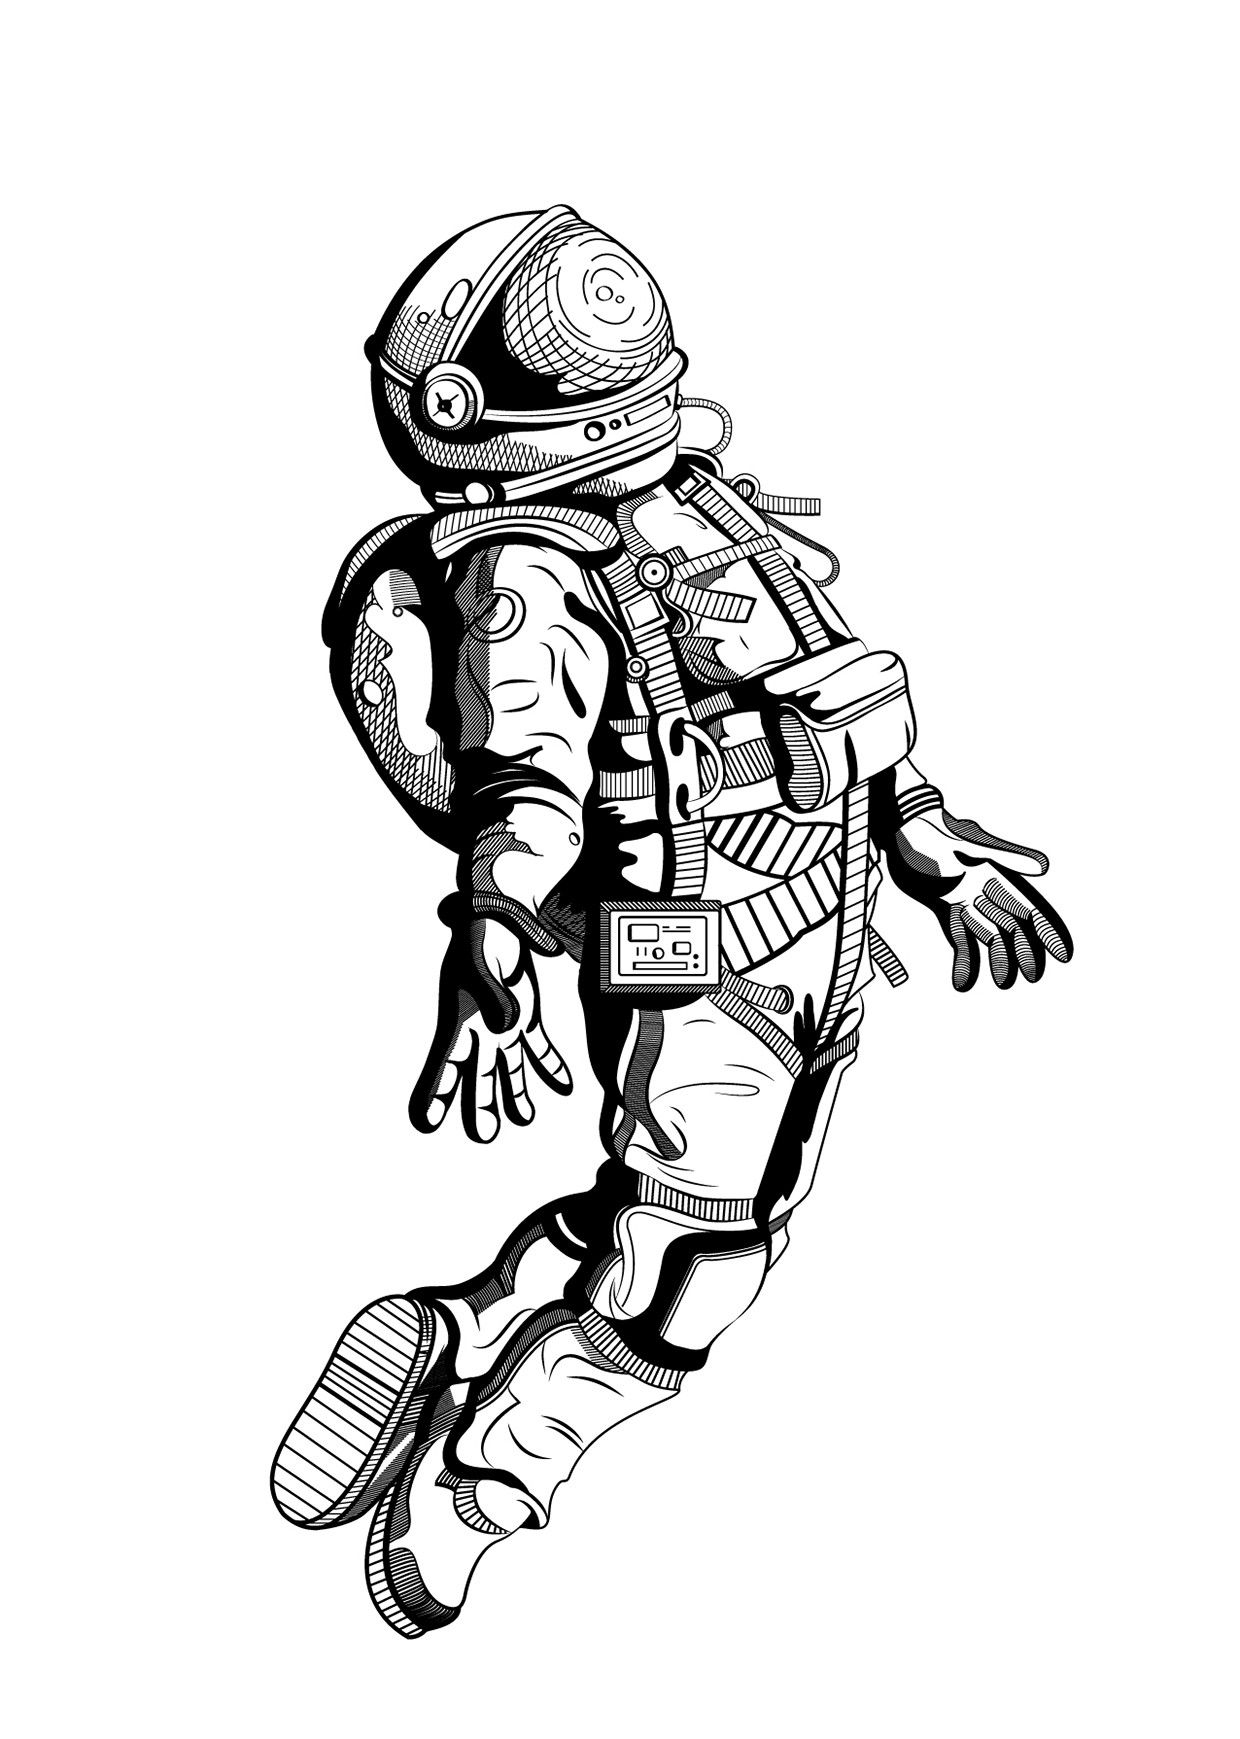 Pin by mat barndt on   INK     Astronaut tattoo, Space ...